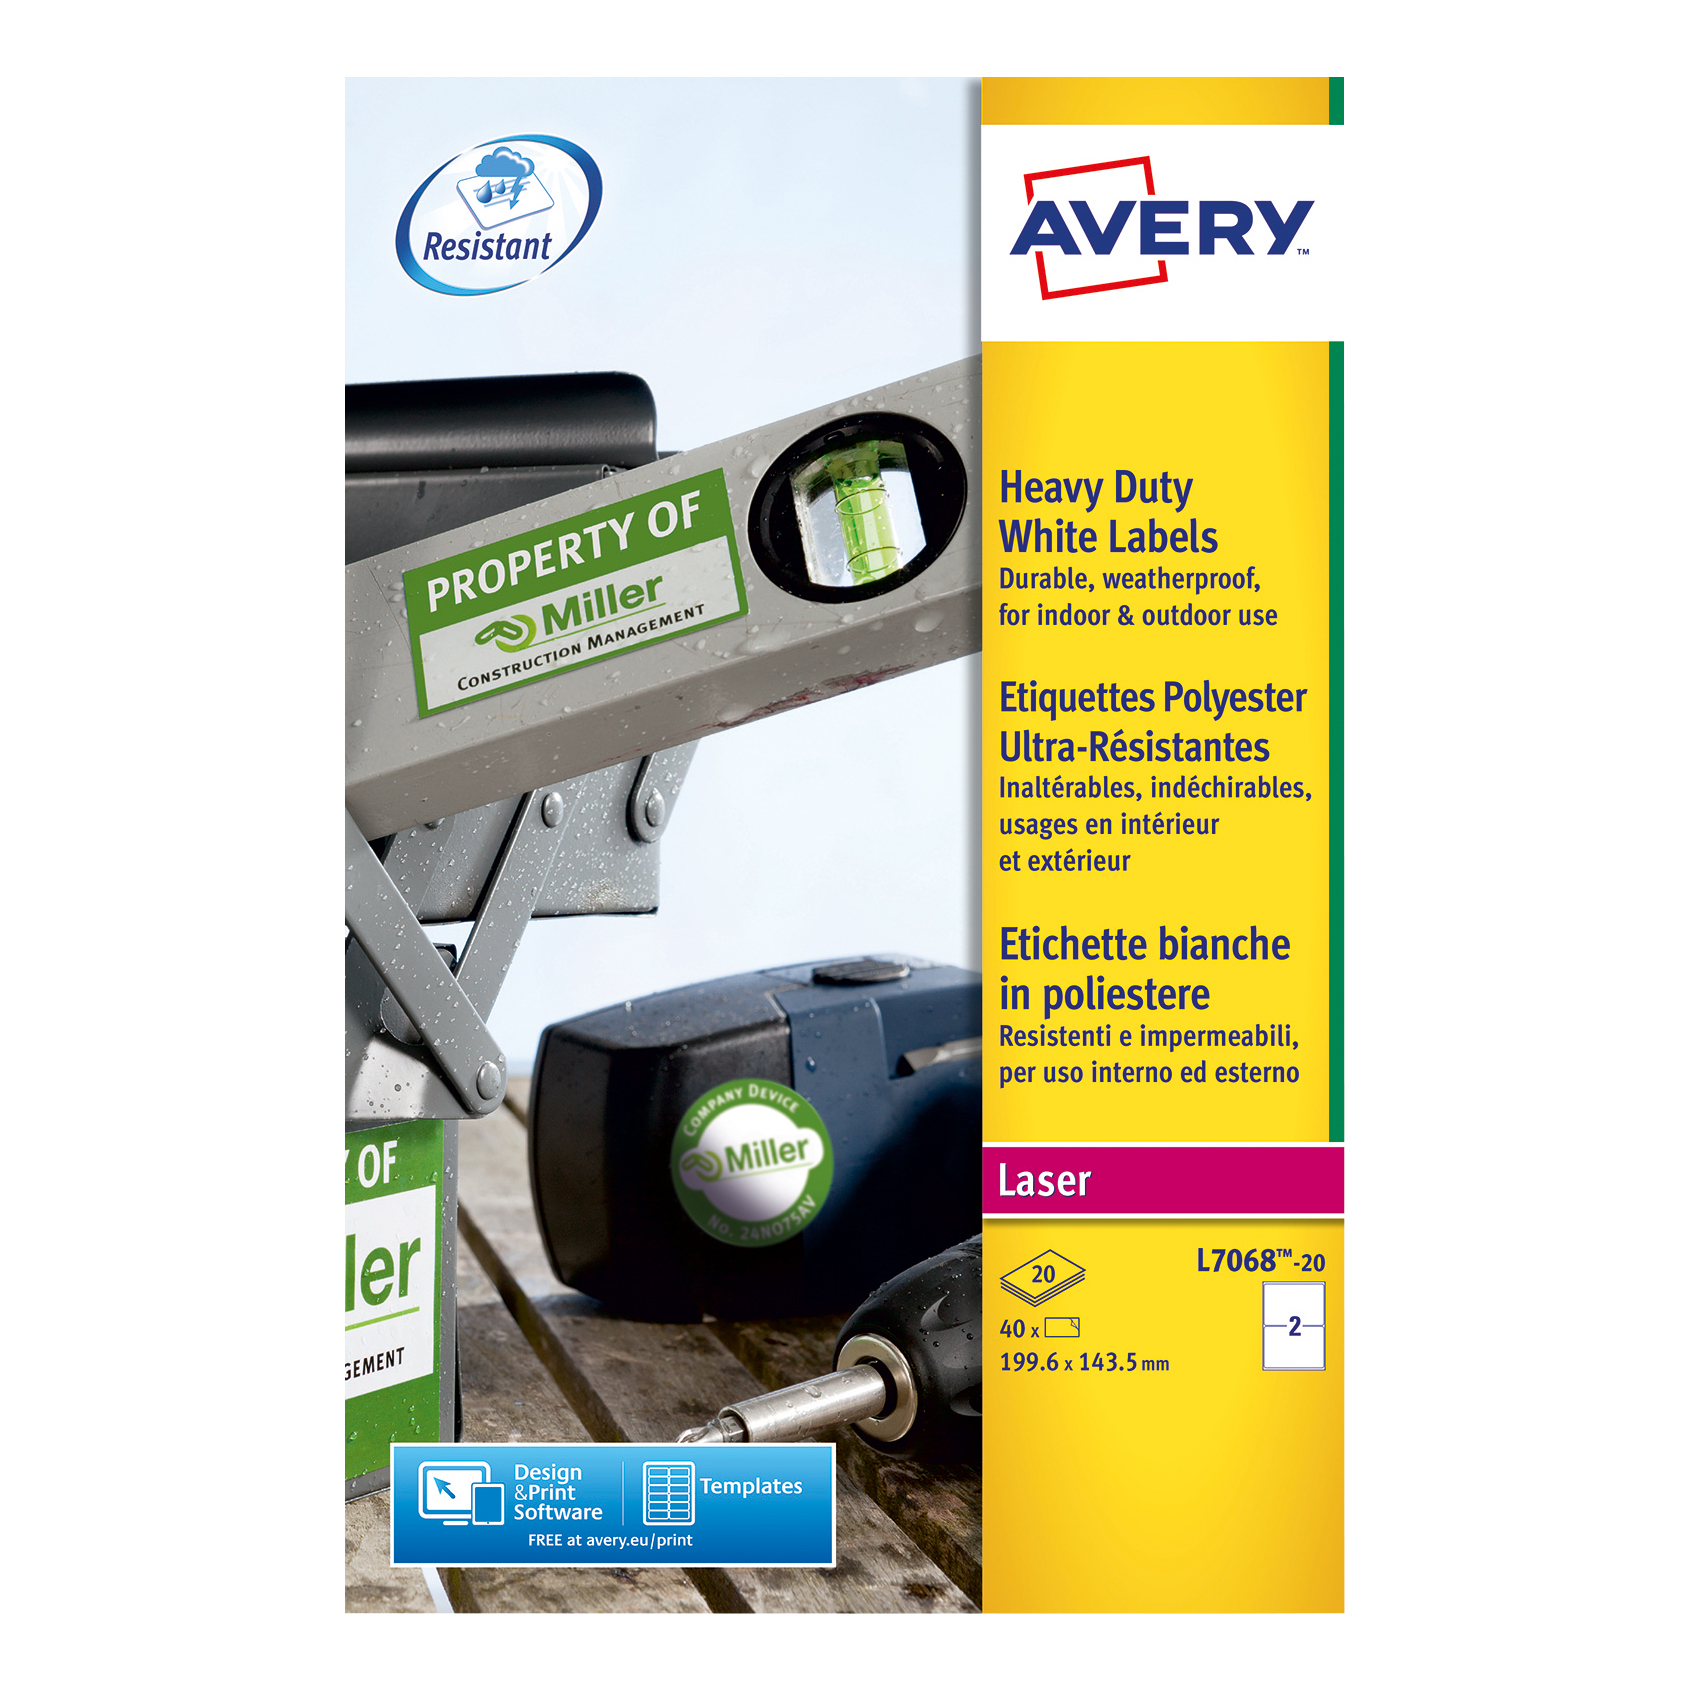 Avery Heavy Duty Labels Laser 2 per Sheet 199.6x143.5mm White Ref L7068-20 40 Labels